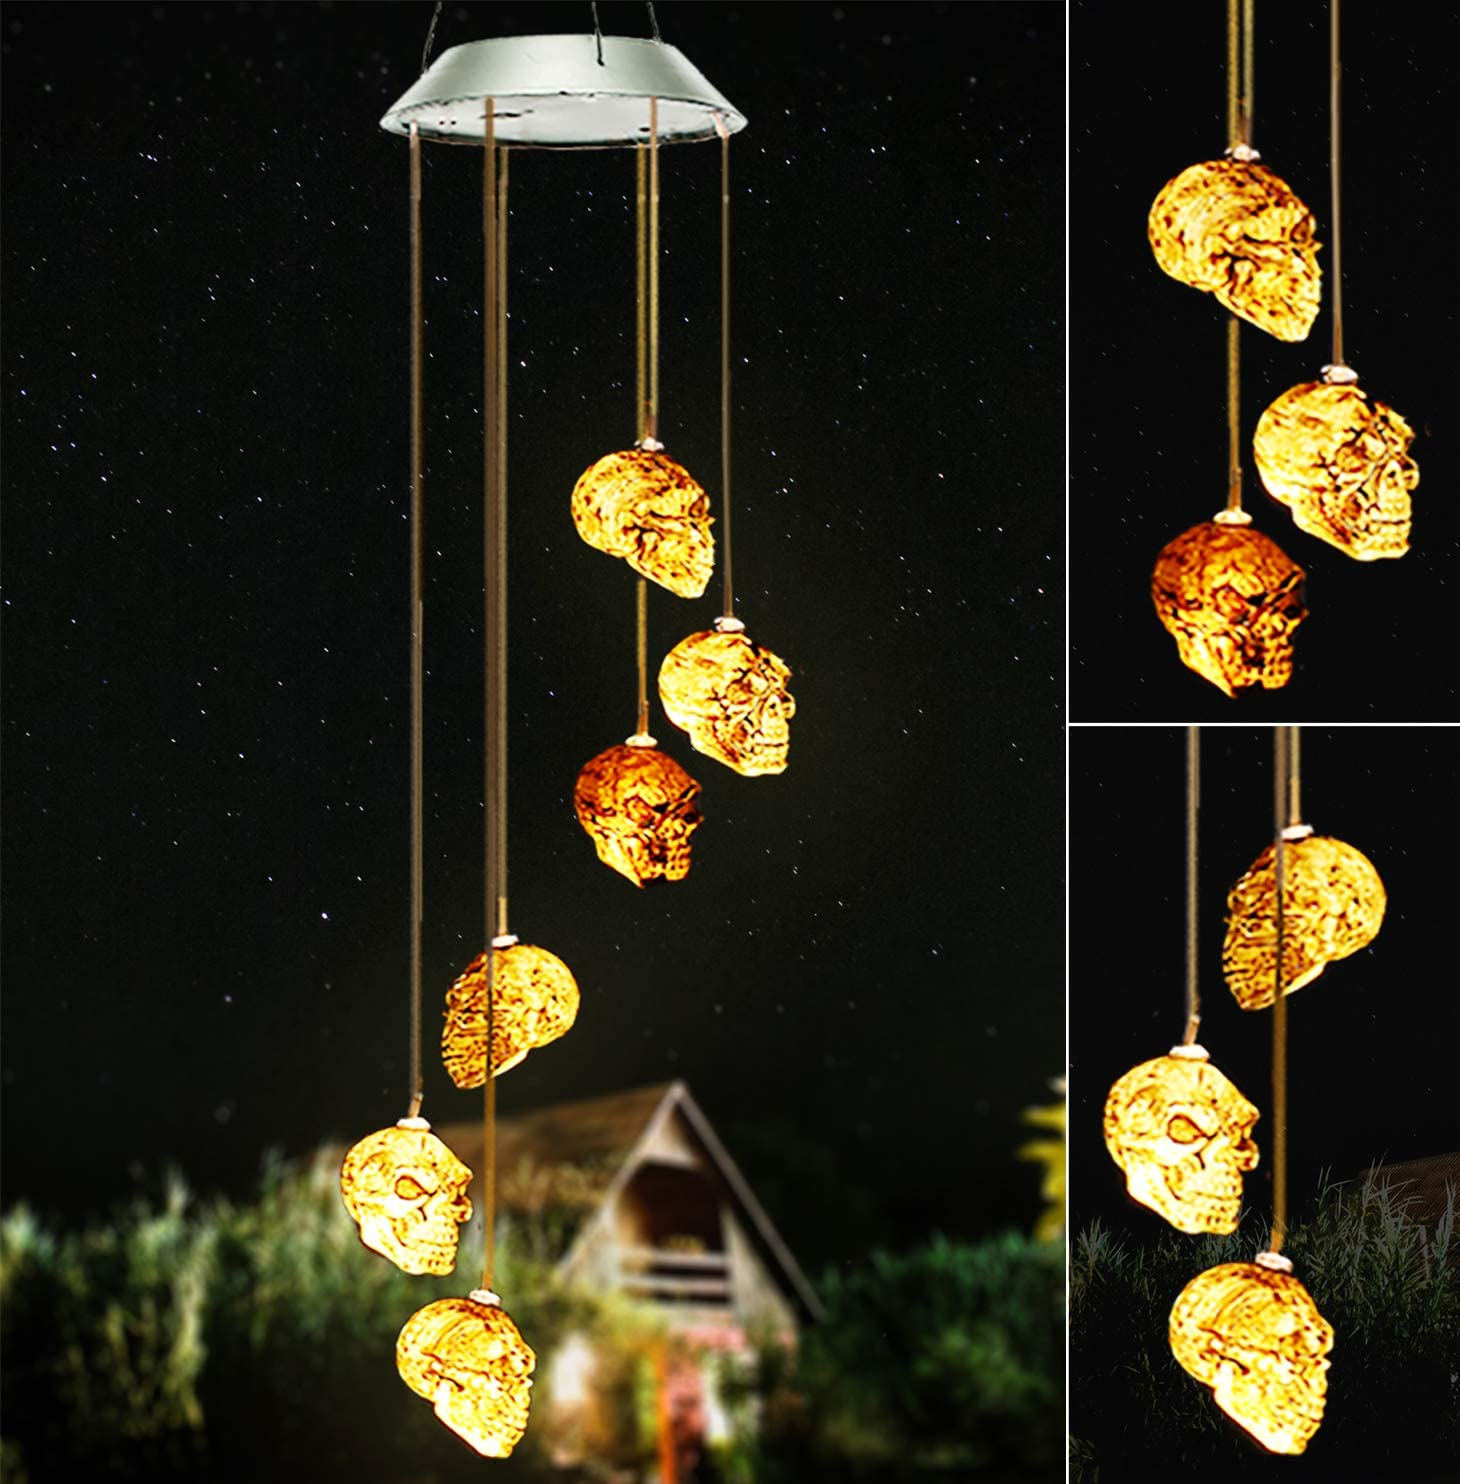 Skull Solar Wind Chimes Light,Wind Chimes Outdoors Decor for Christmas Home Party Decor Gift,Skeleton Solar Wind Chimes with 6 LED Skull Lights, Waterproof Wind Chimes Lights for Indoor/Outdoors Decor